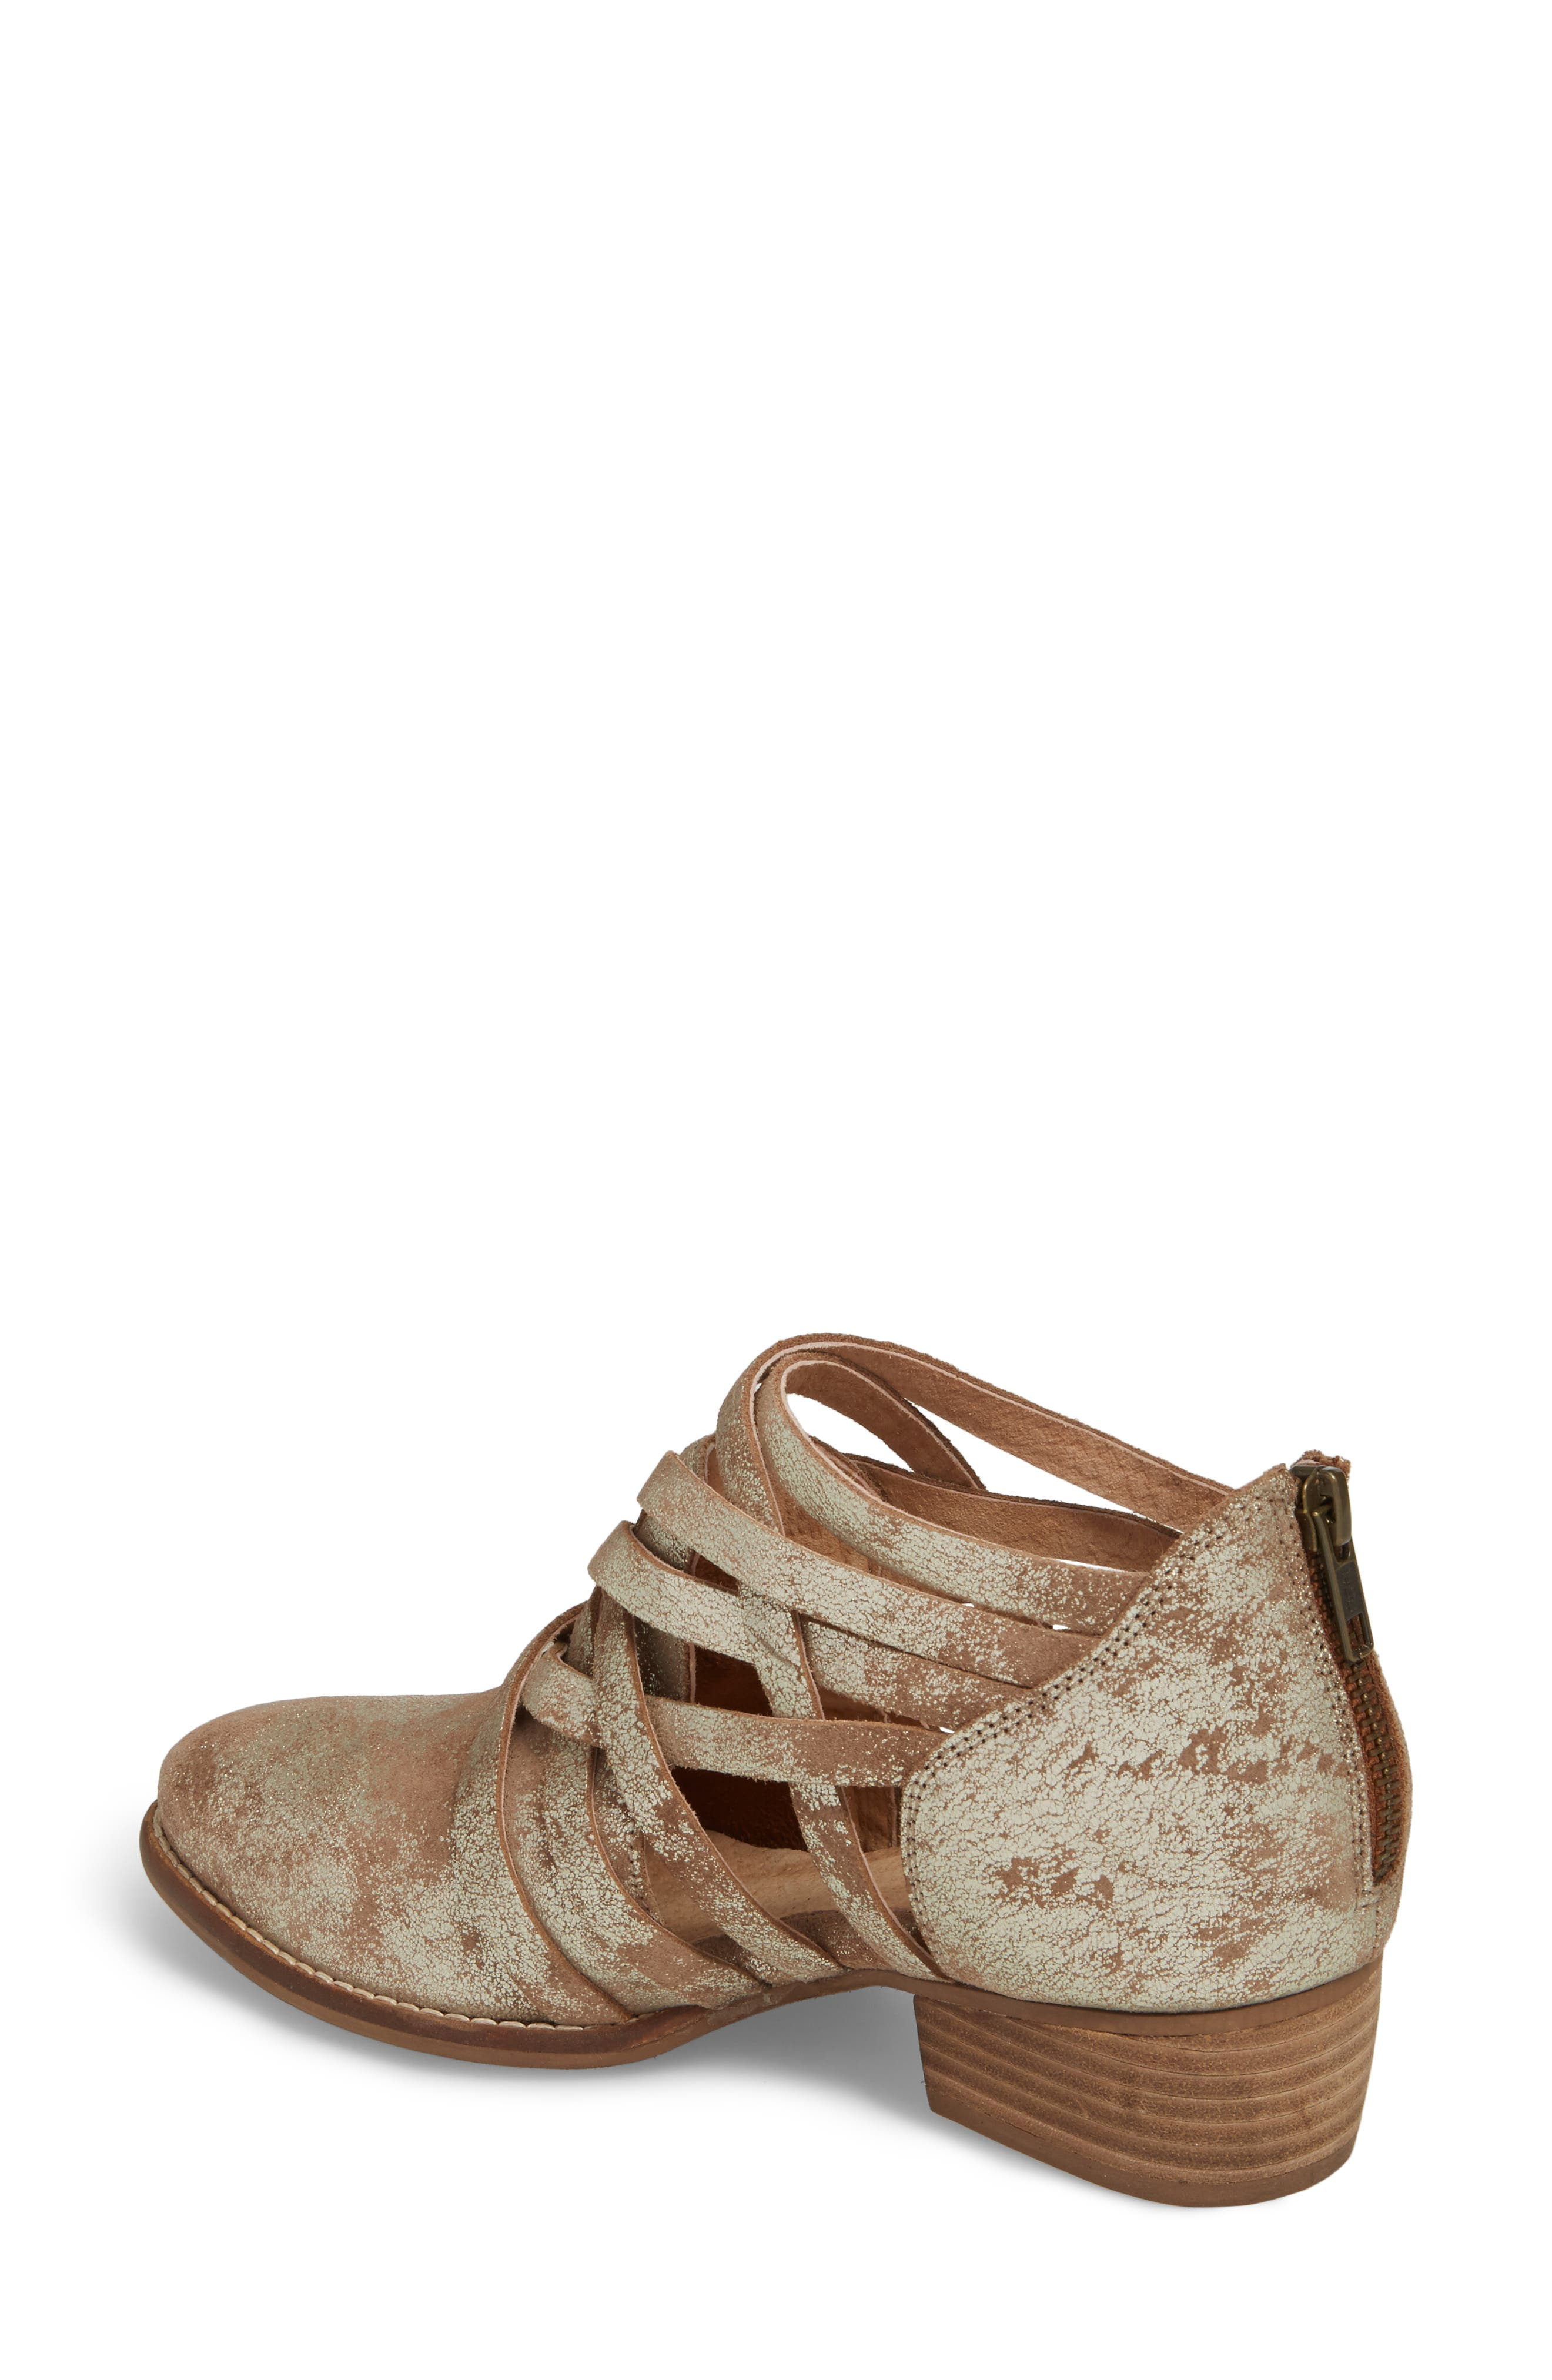 So Blue Cutout Bootie,                             Alternate thumbnail 2, color,                             GOLD DISTRESSED LEATHER